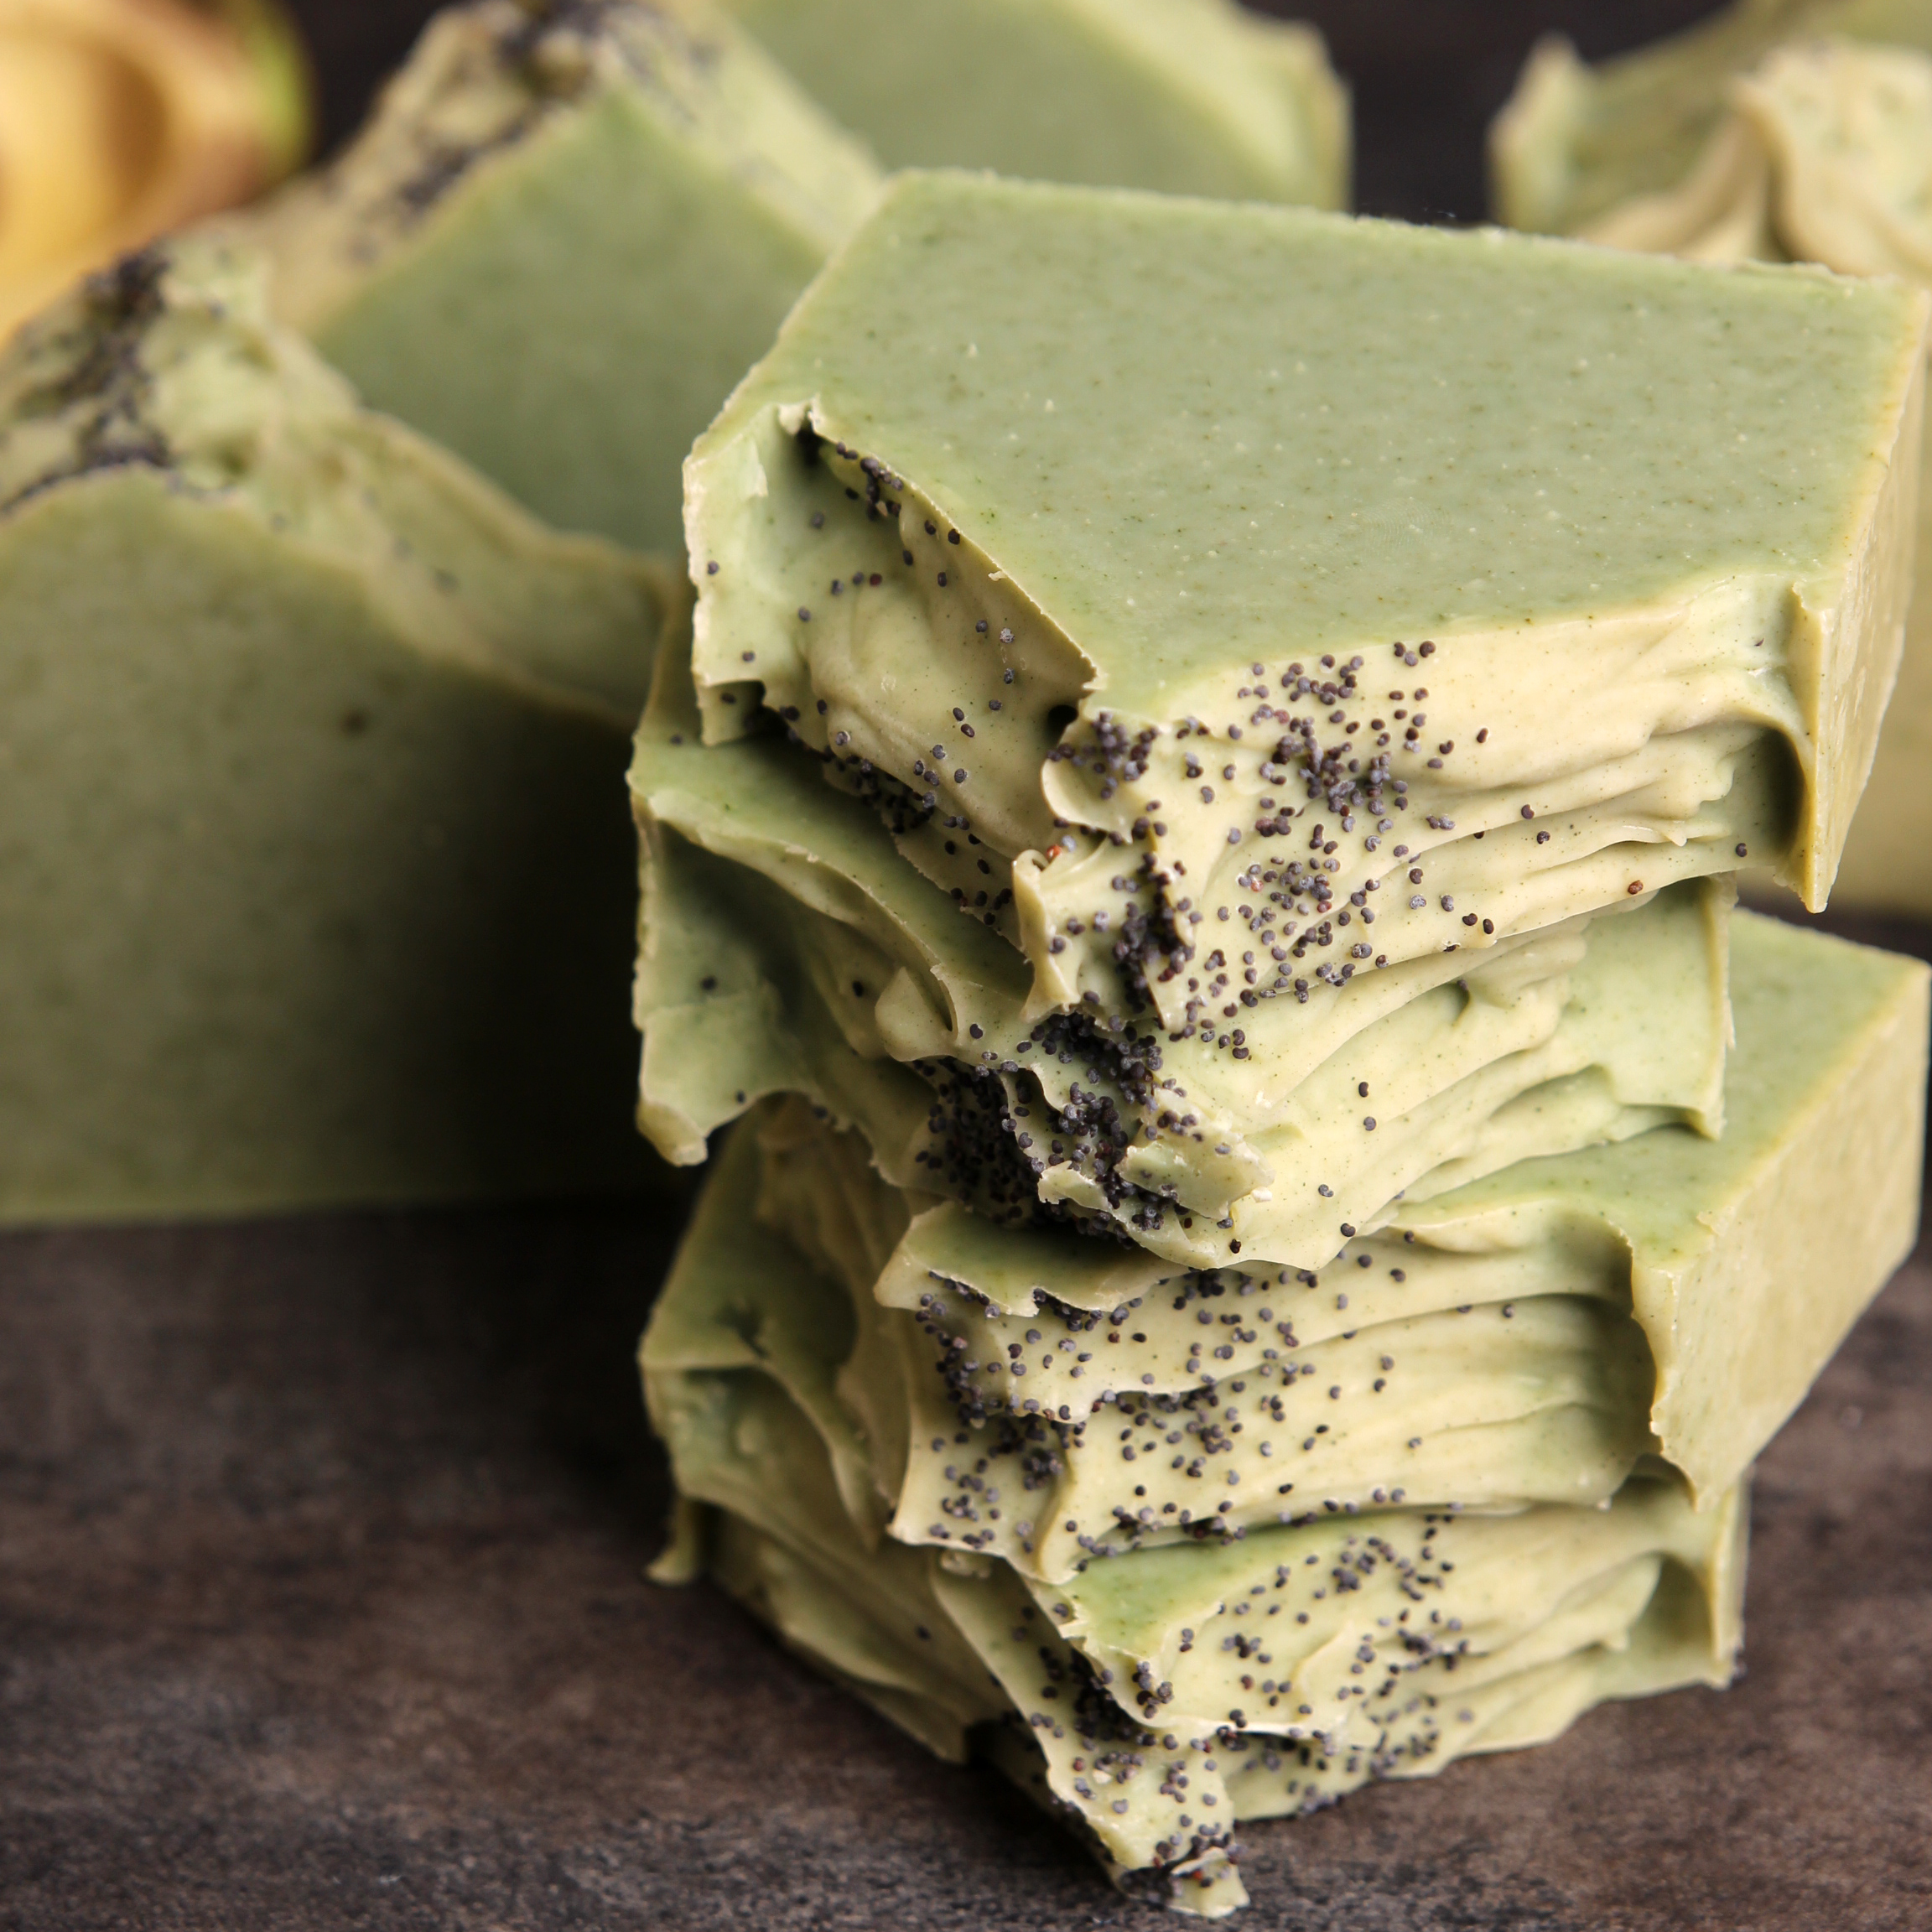 Avocado + Spearmint Cold Process Soap Kit